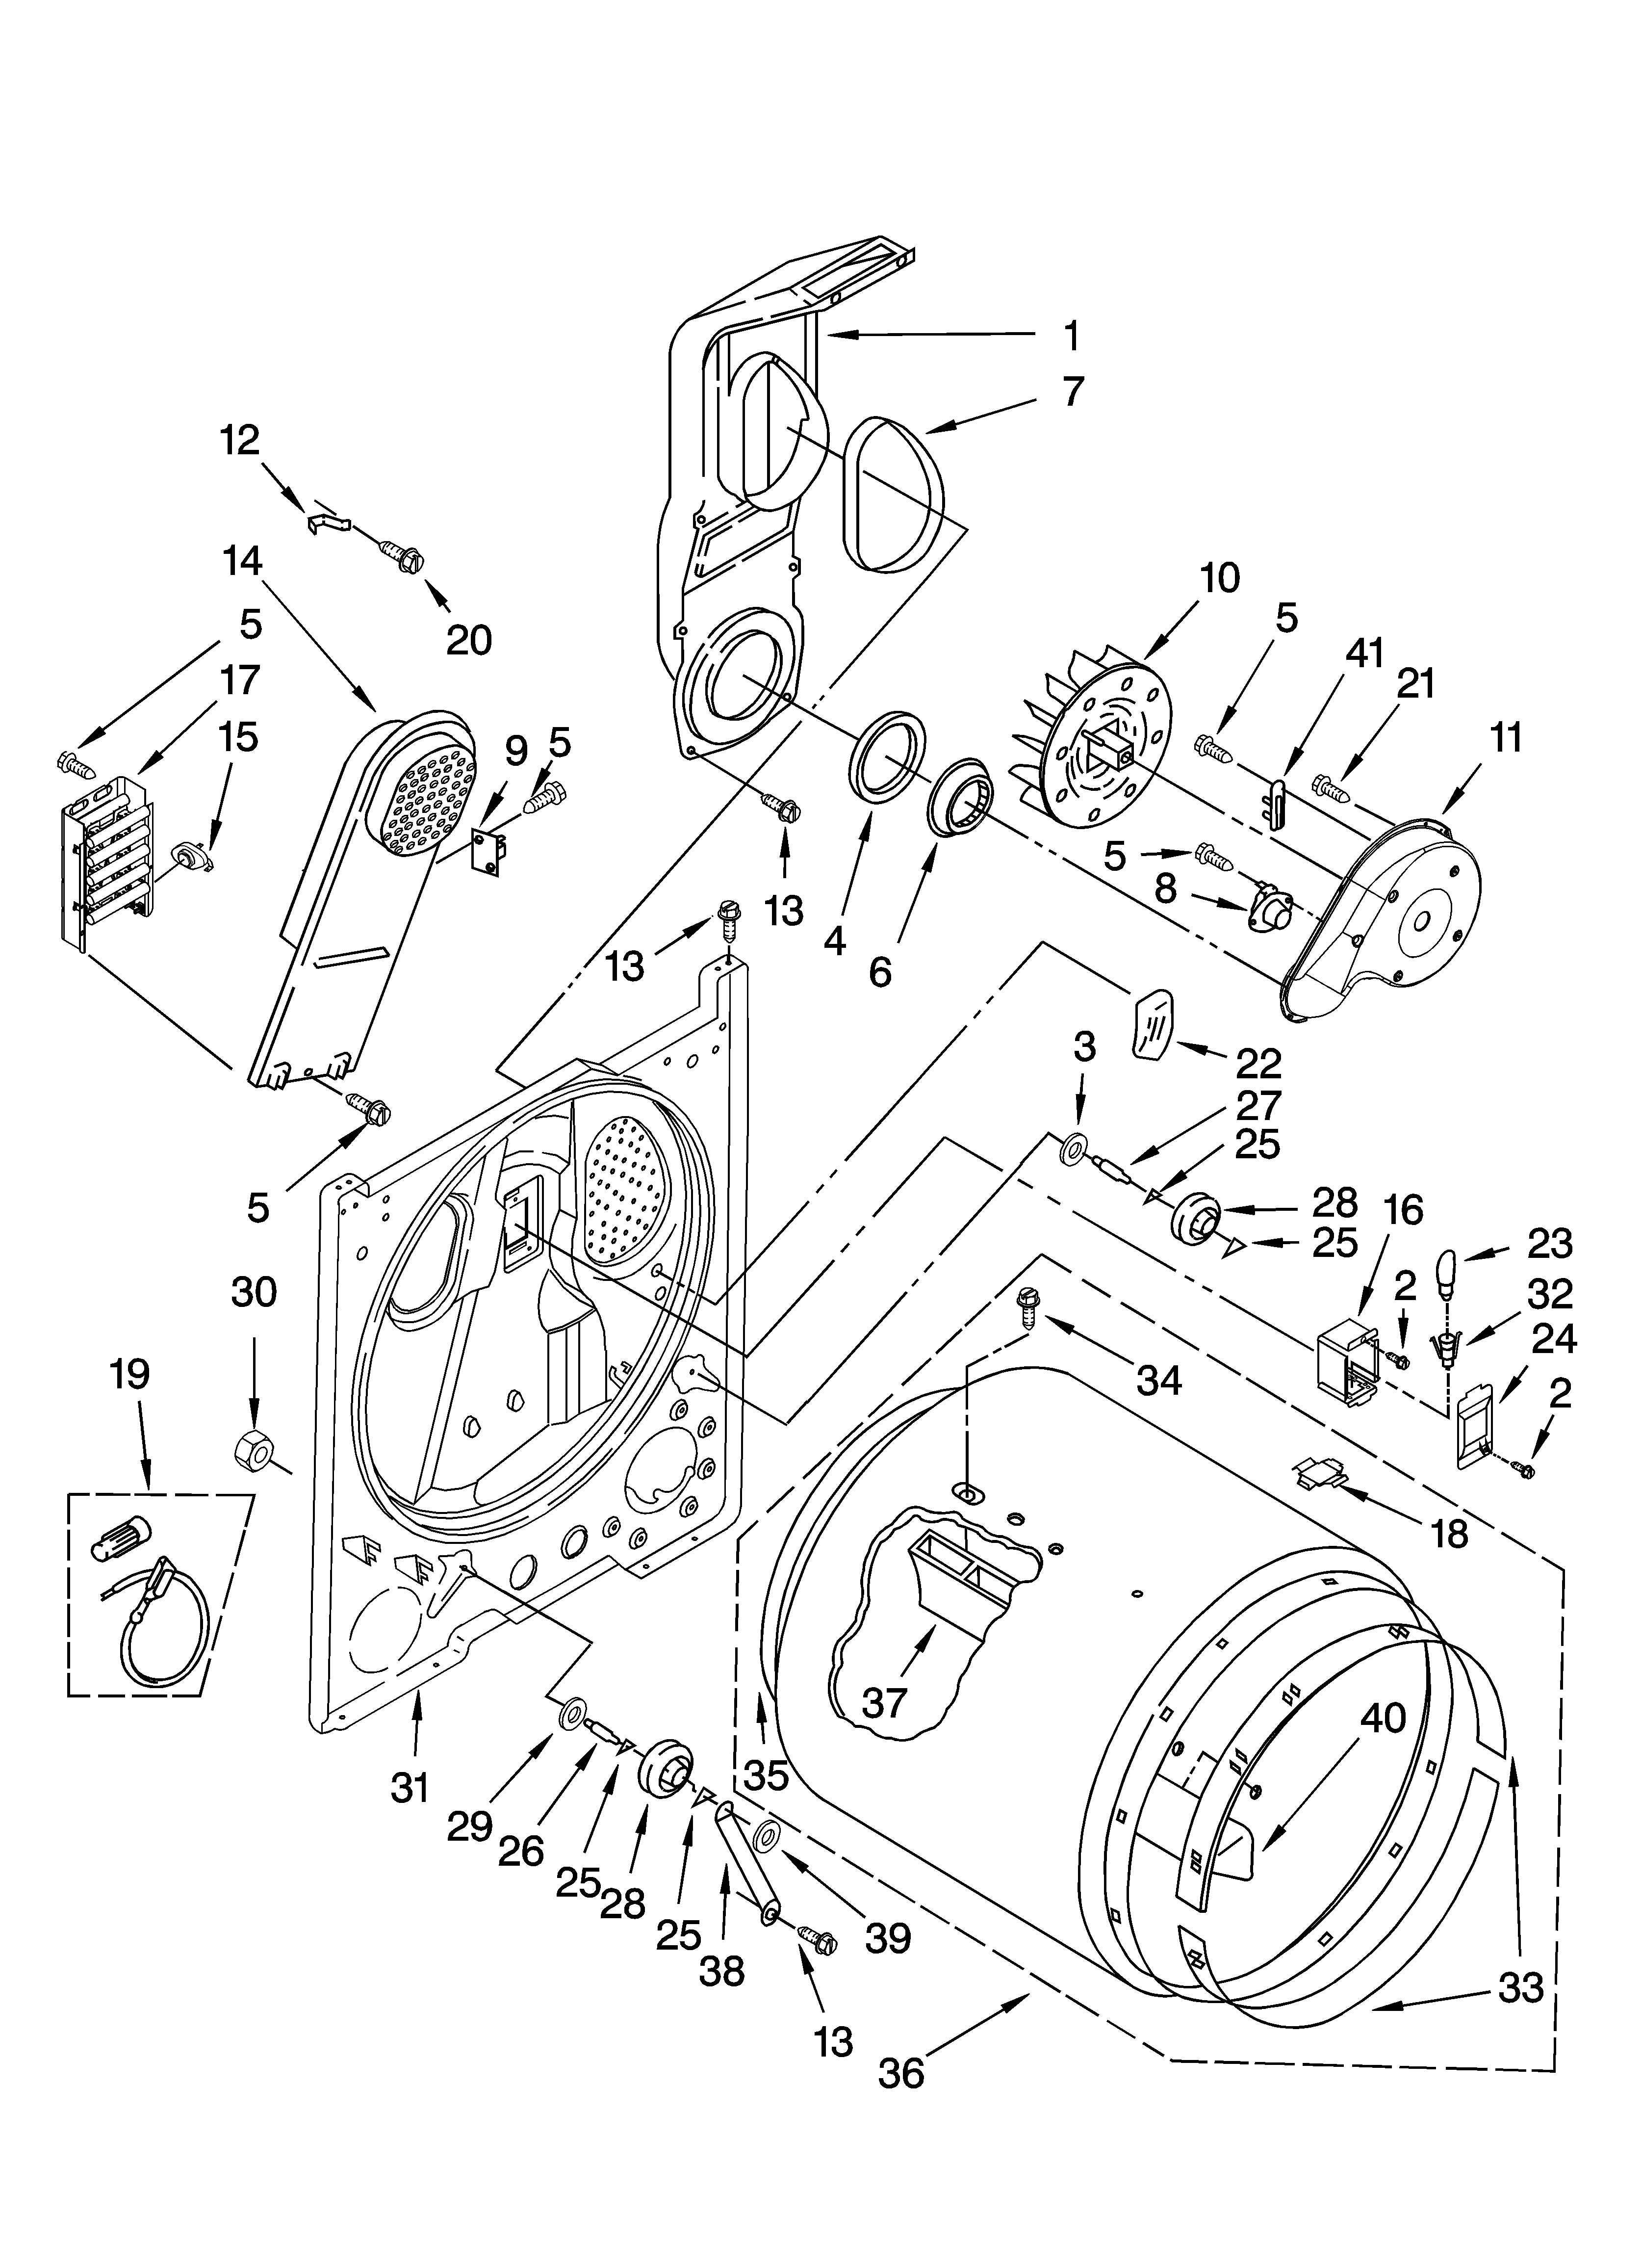 Maytag MED5820TW0 bulkhead parts, optional parts (not included) diagram